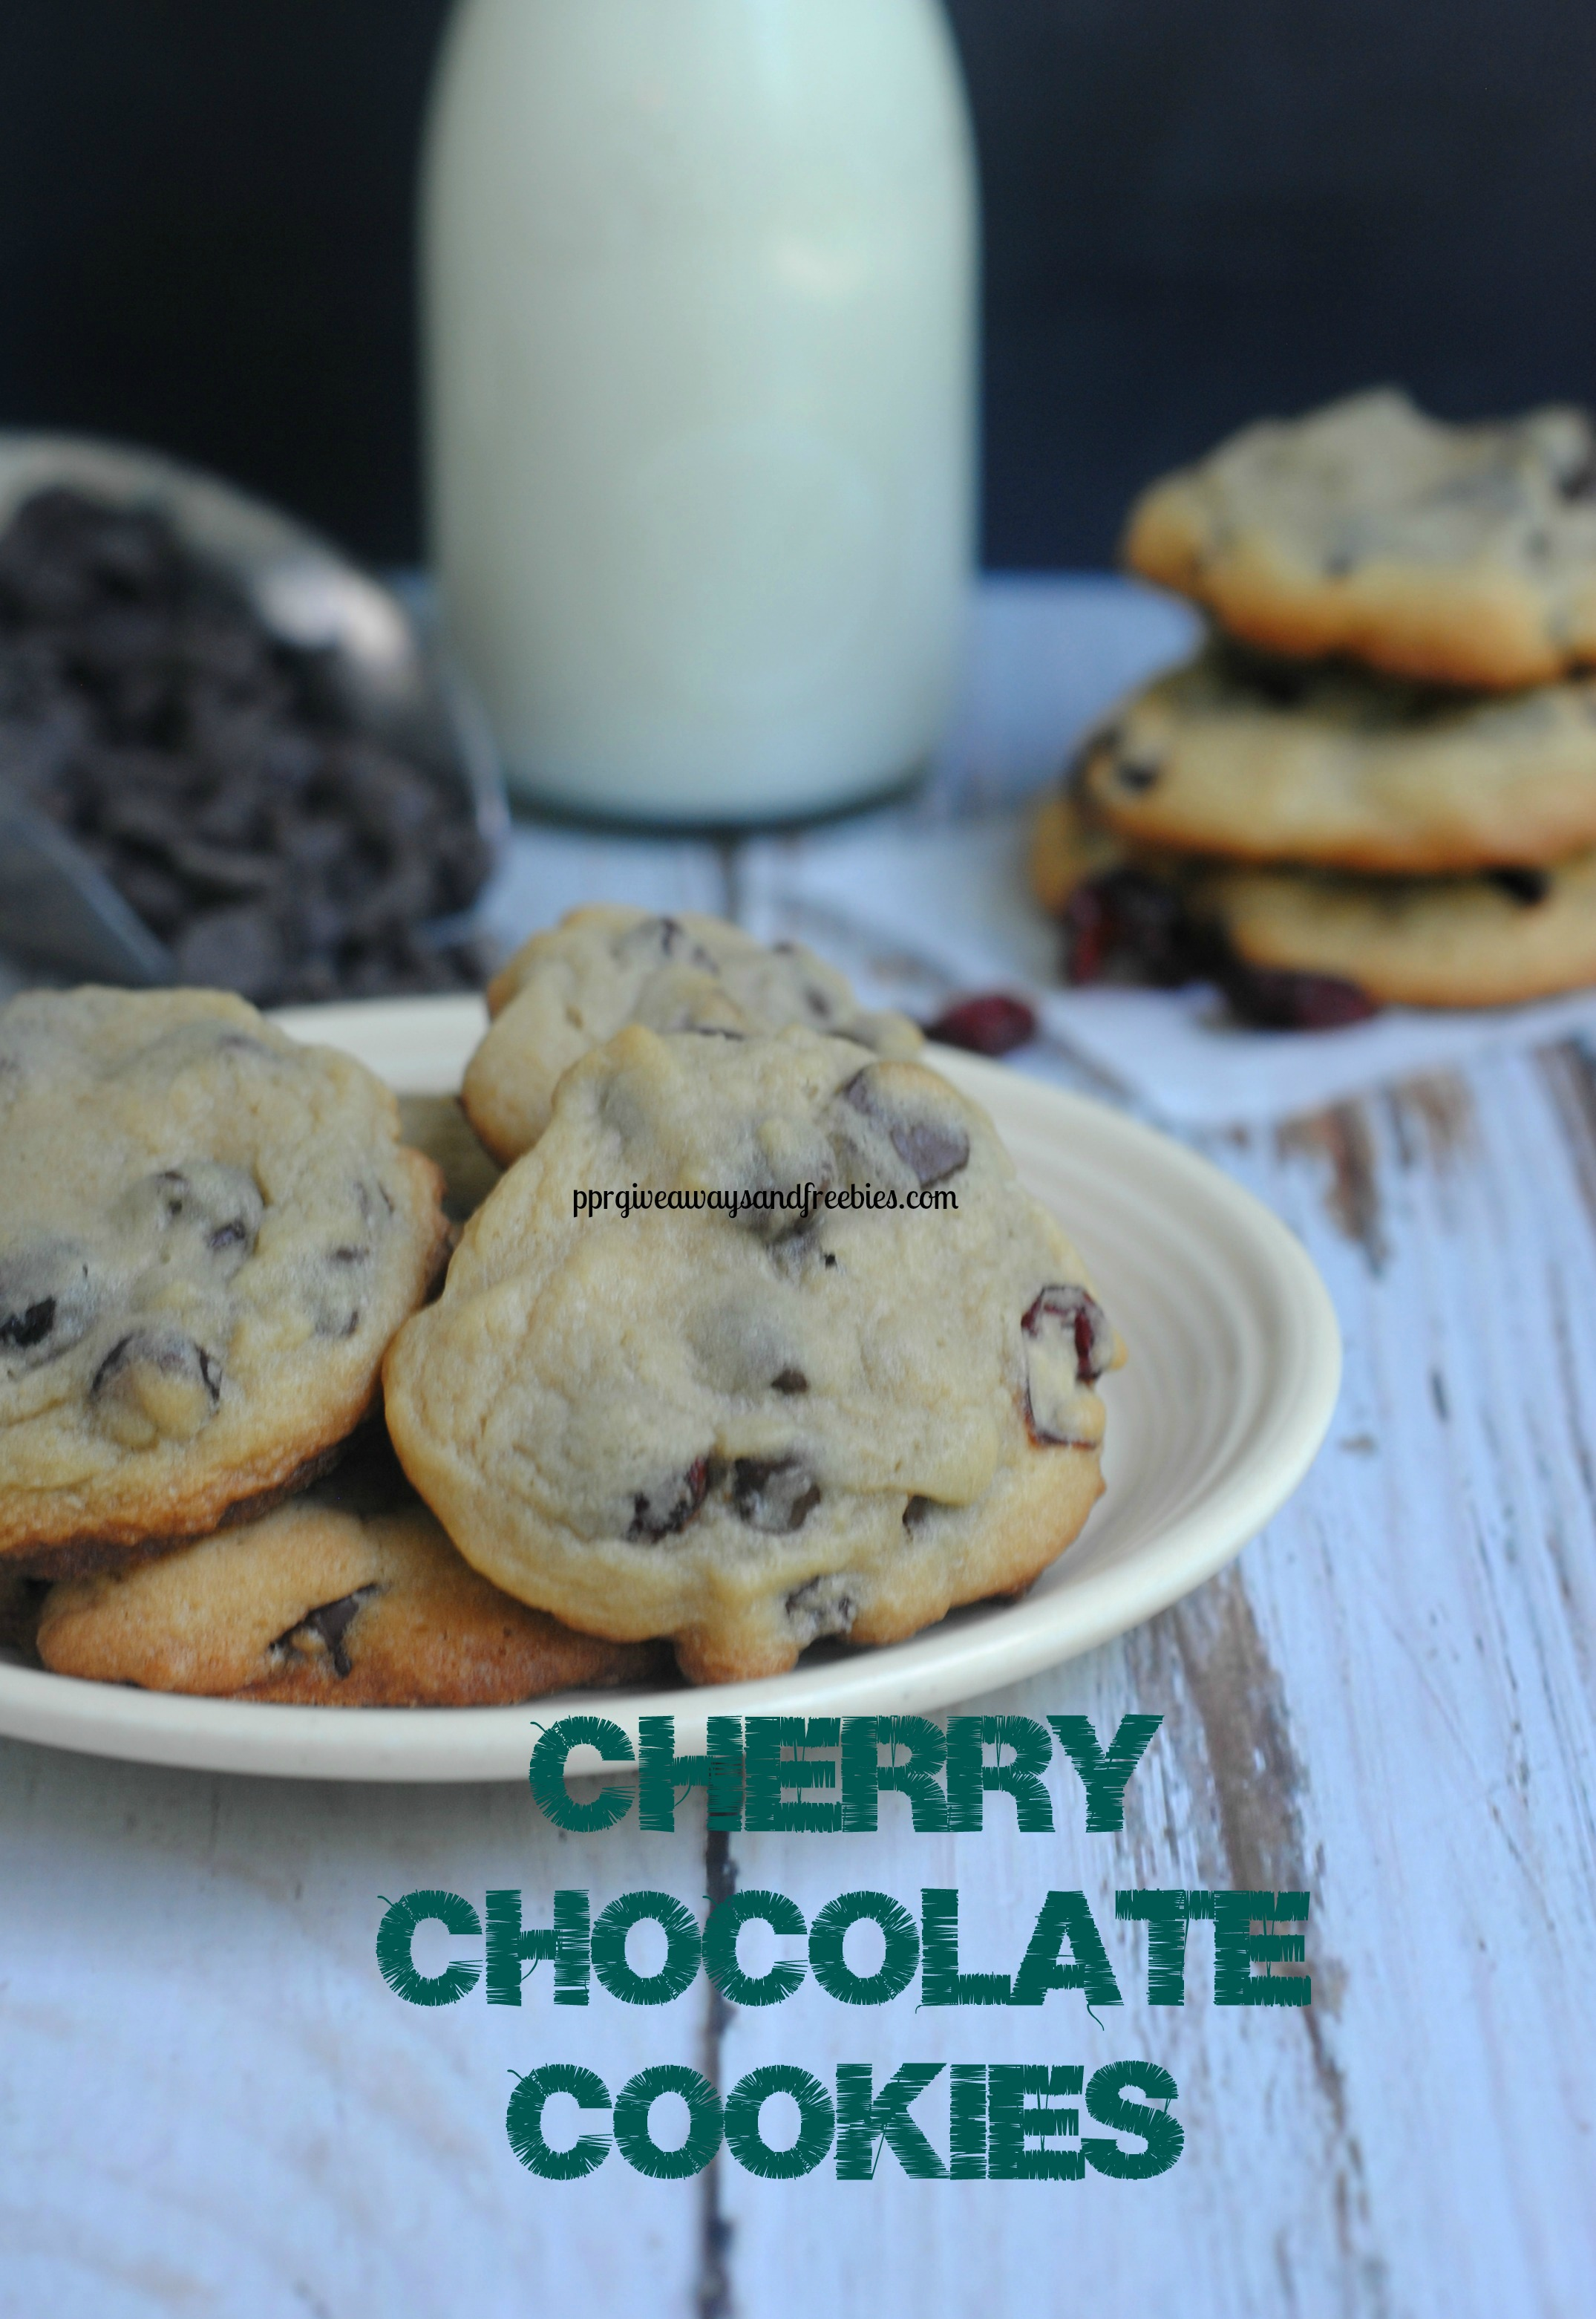 Tasty Chocolate Cherry Cookies